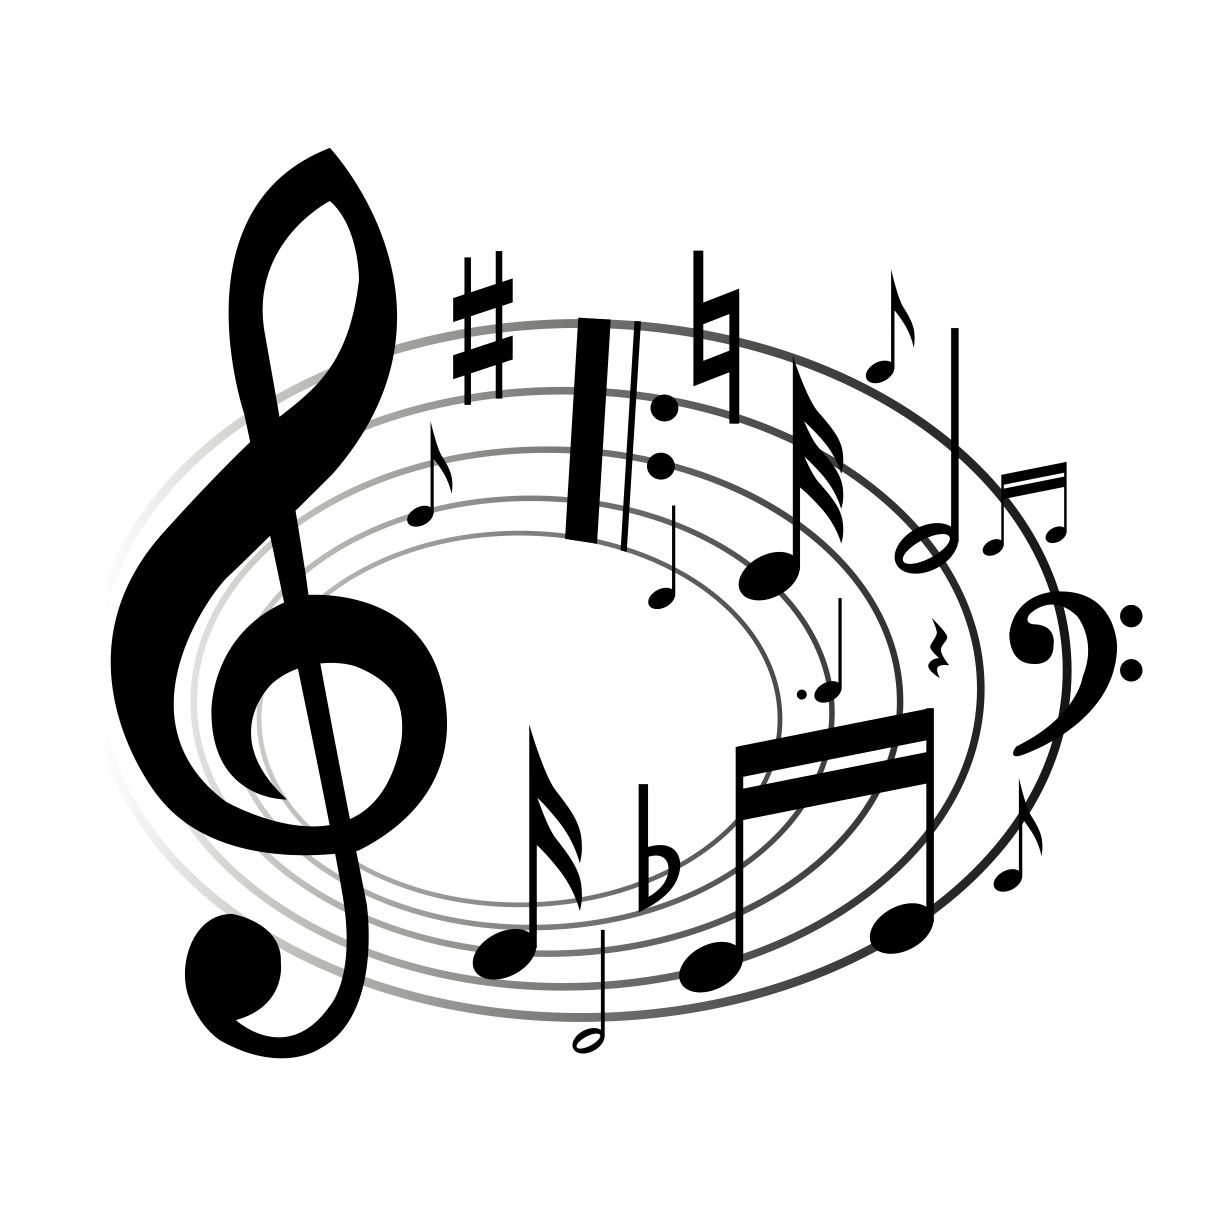 Black Musical Notes - ClipArt Best